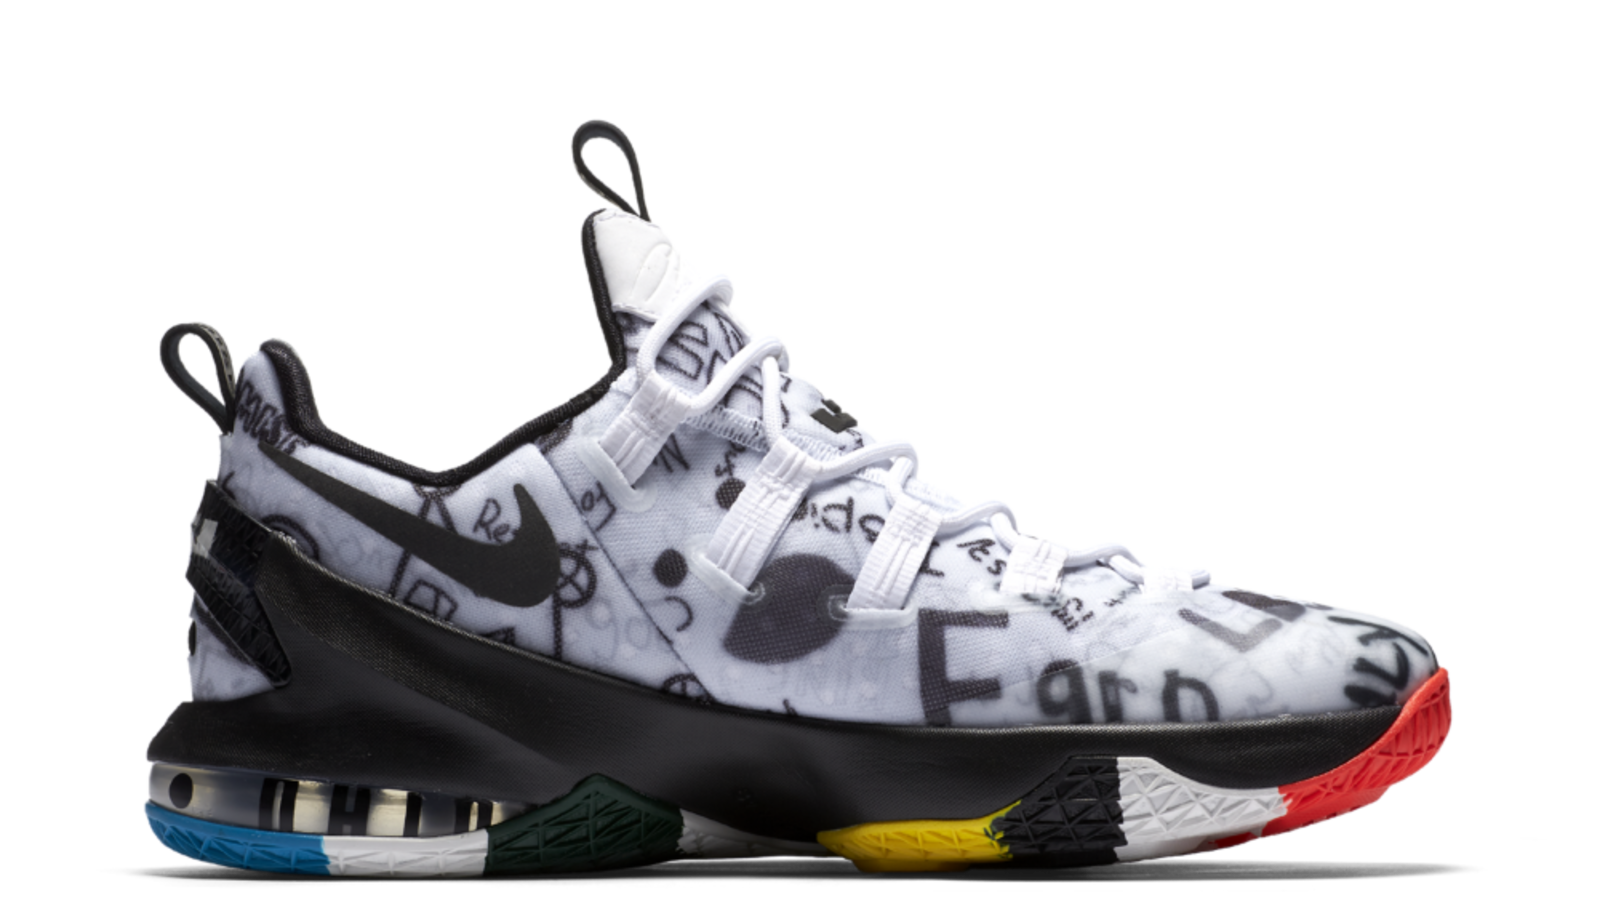 Kd drawing lebron 13. Sneakers clipart library